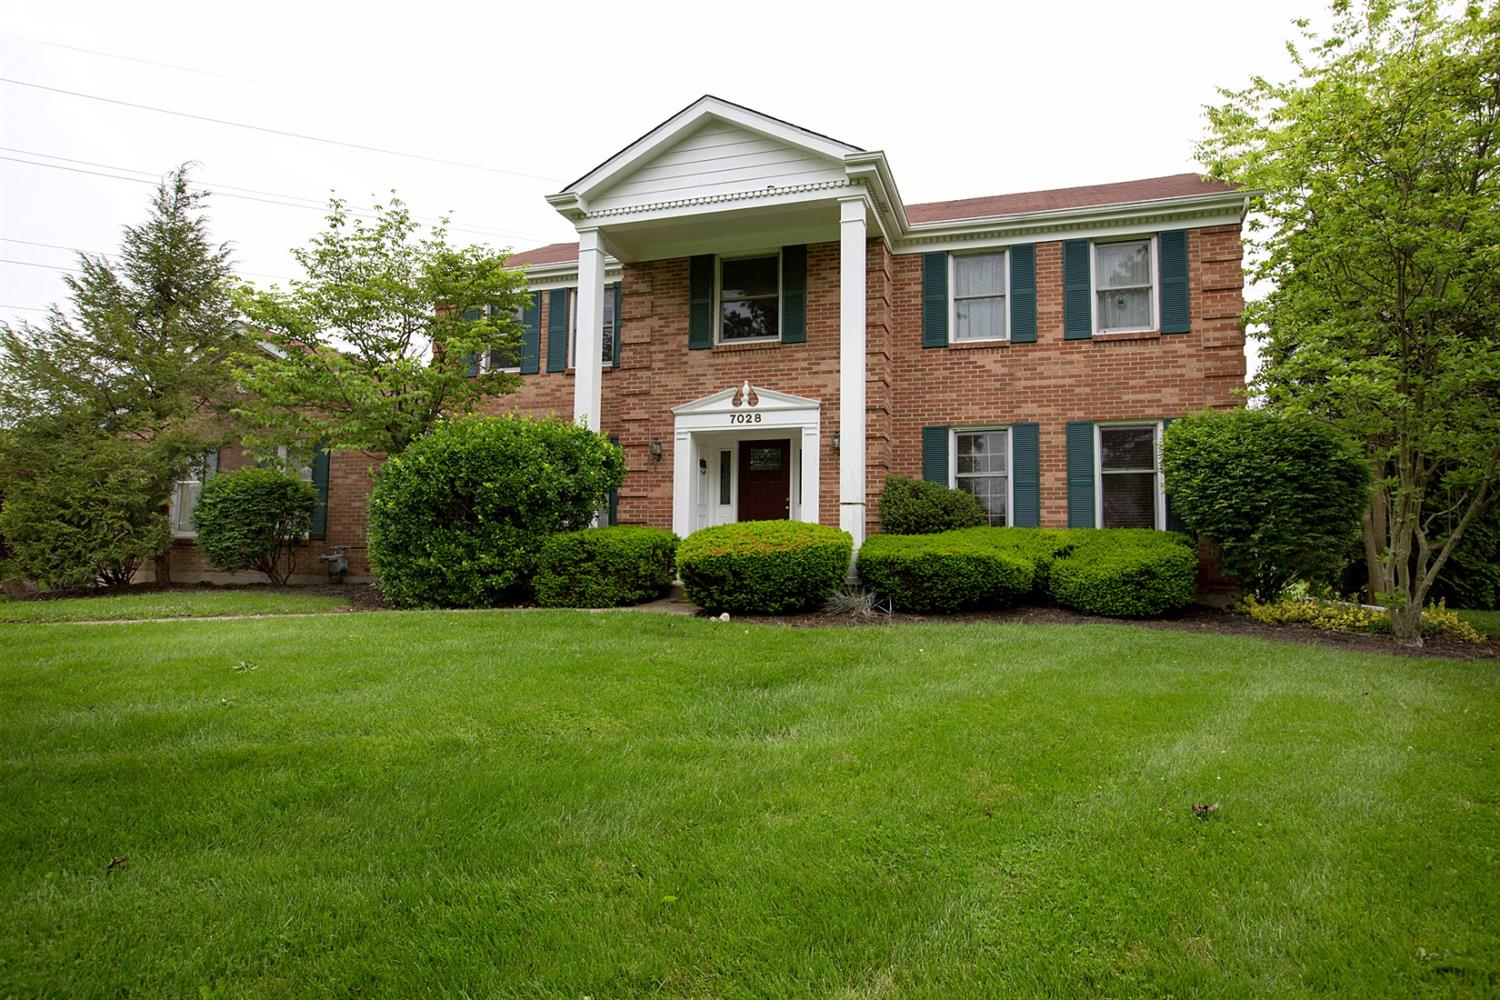 7028 Plumwood Court, West Chester, OH 45241